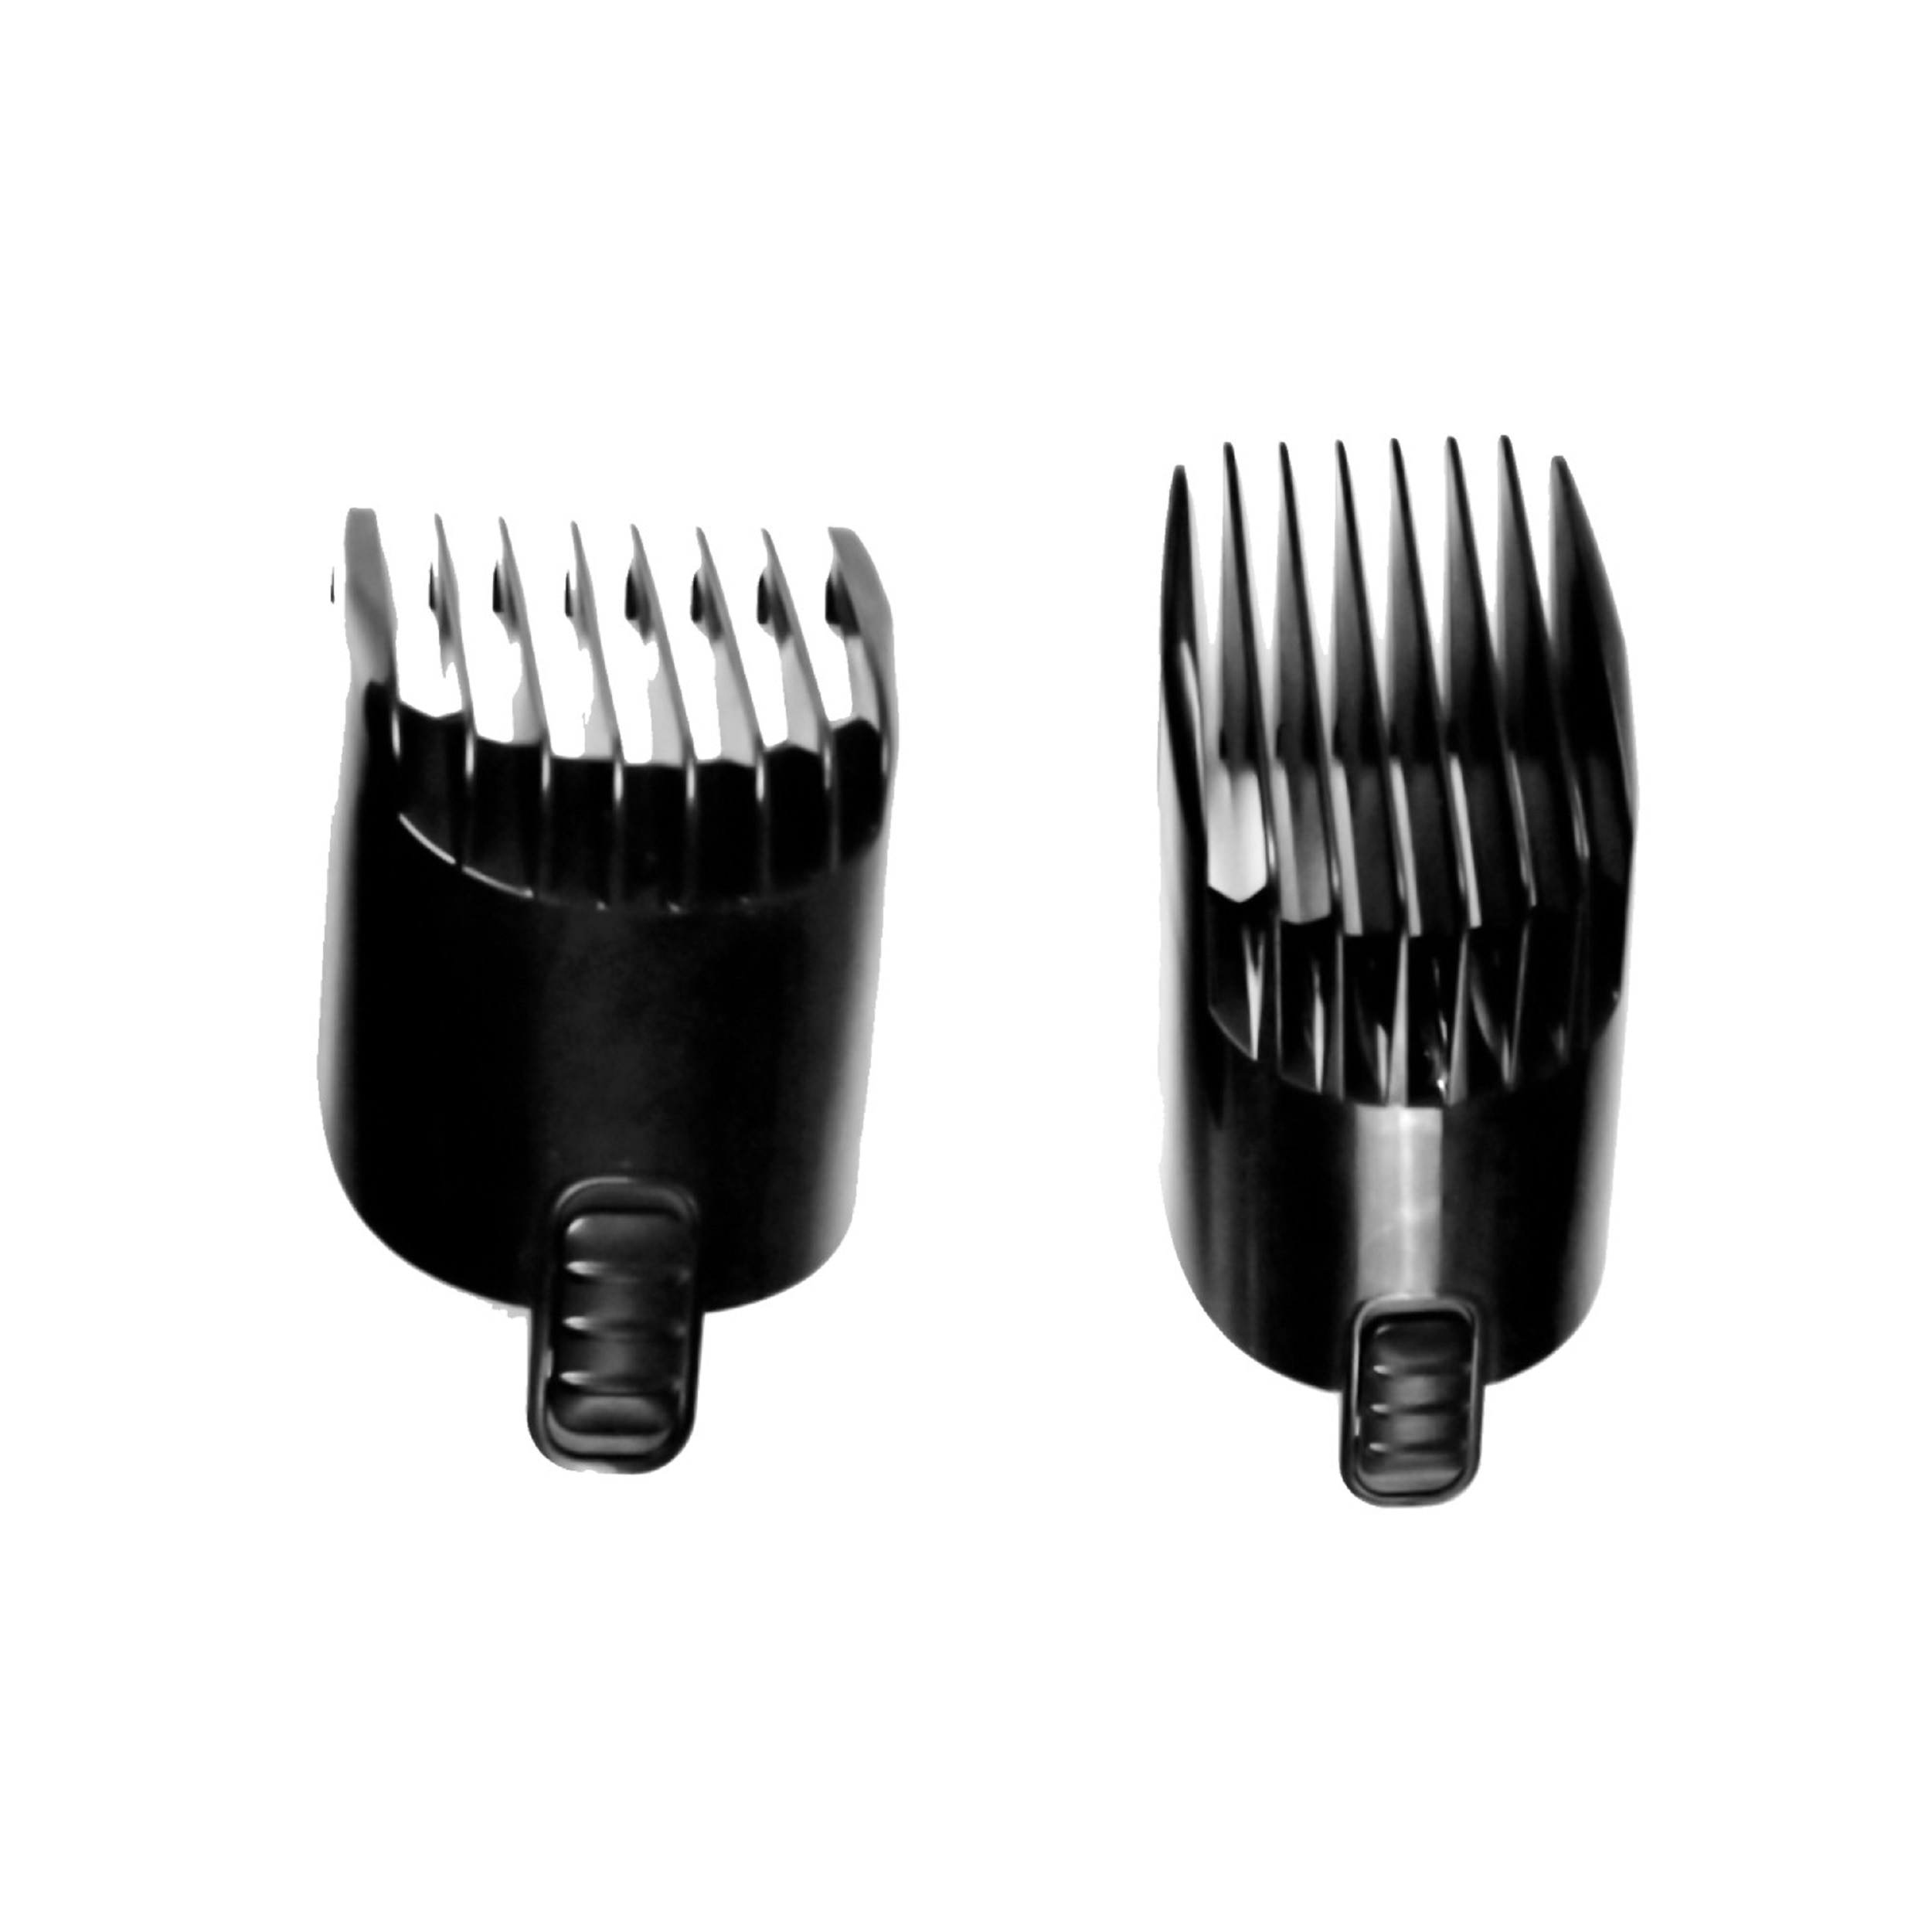 EUROOEuroo Hair Clipper,Body Massager and Other Electricals